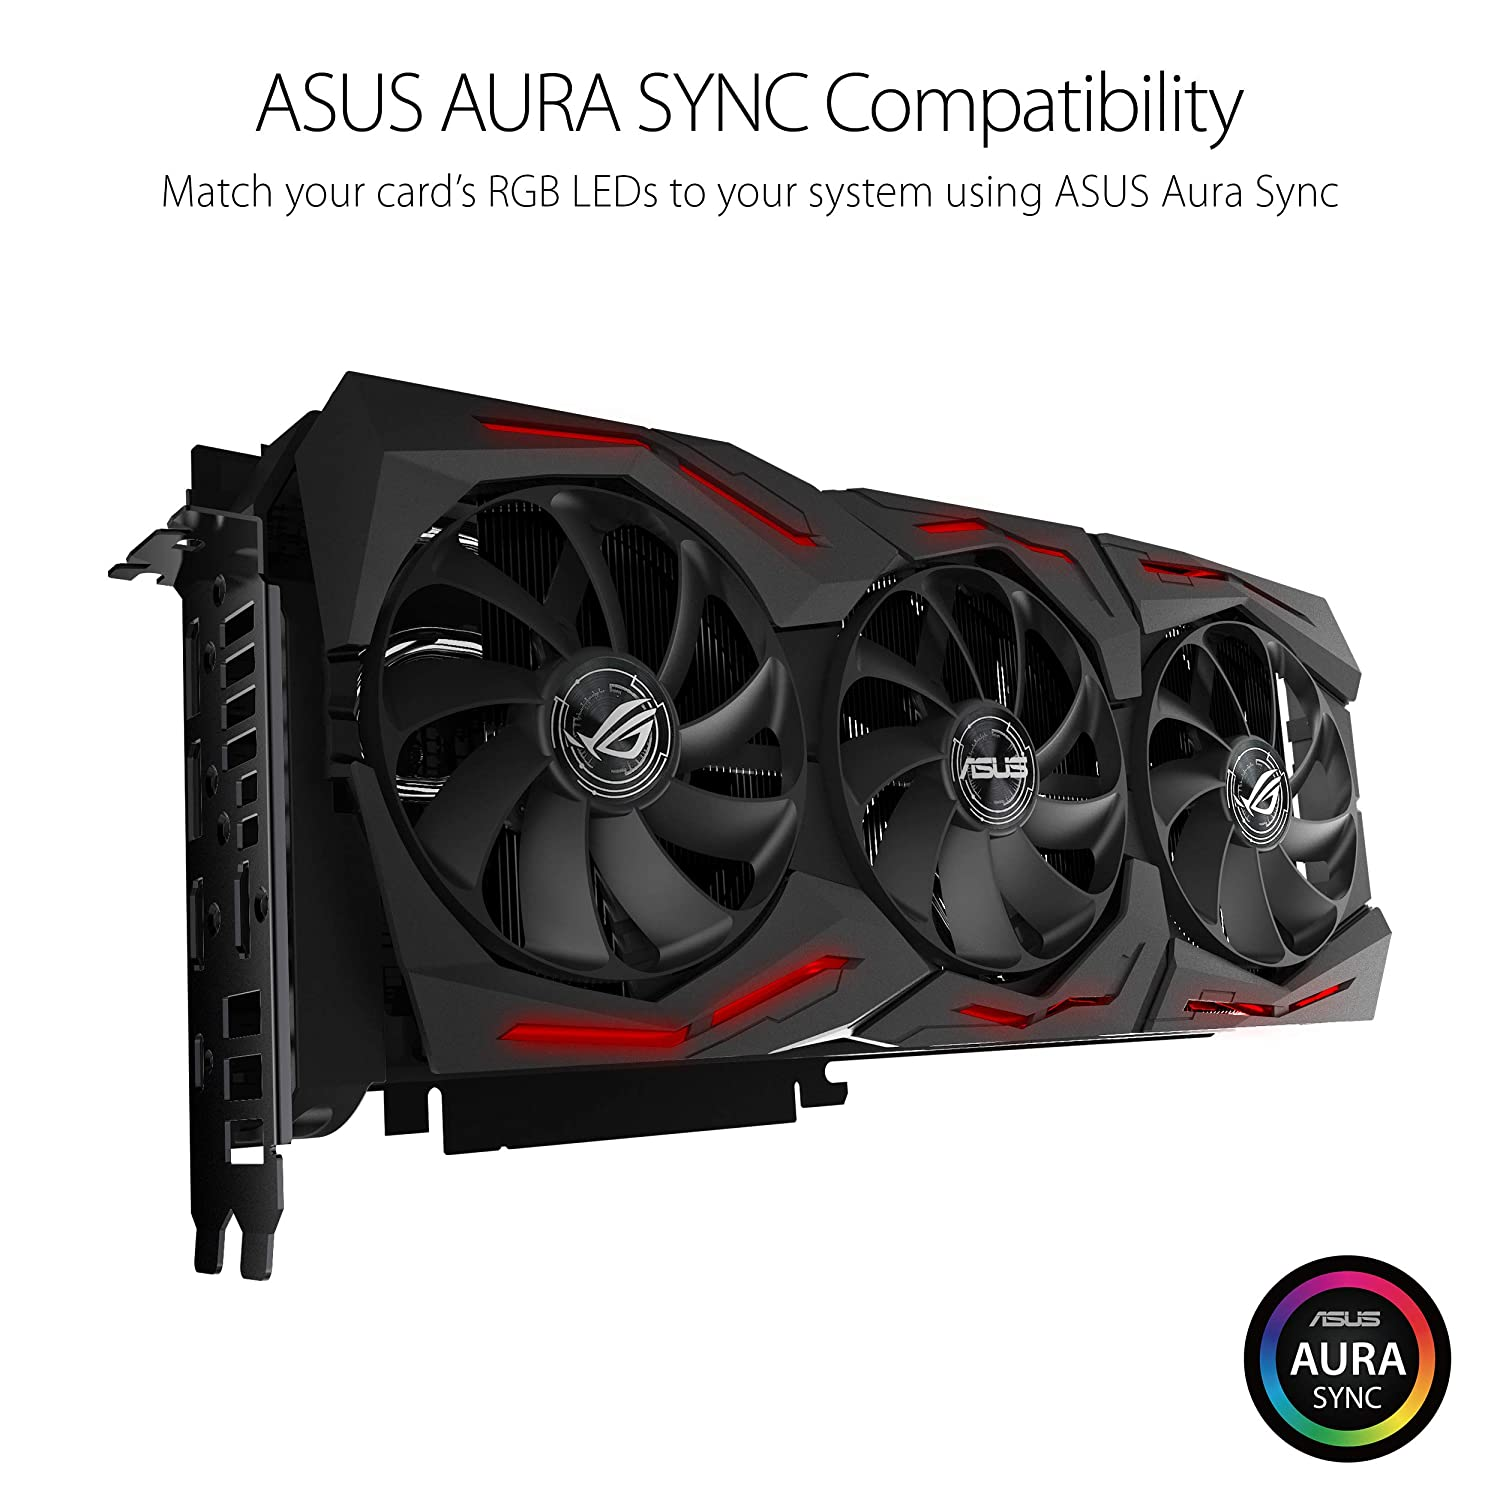 Amazon.com: ASUS GeForce RTX 2070 Advanced A8G GDDR6 HDMI DP 1.4 USB Type-C Graphic Card (ROG-STRIX-RTX2070-A8G-GAMING): Computers & Accessories